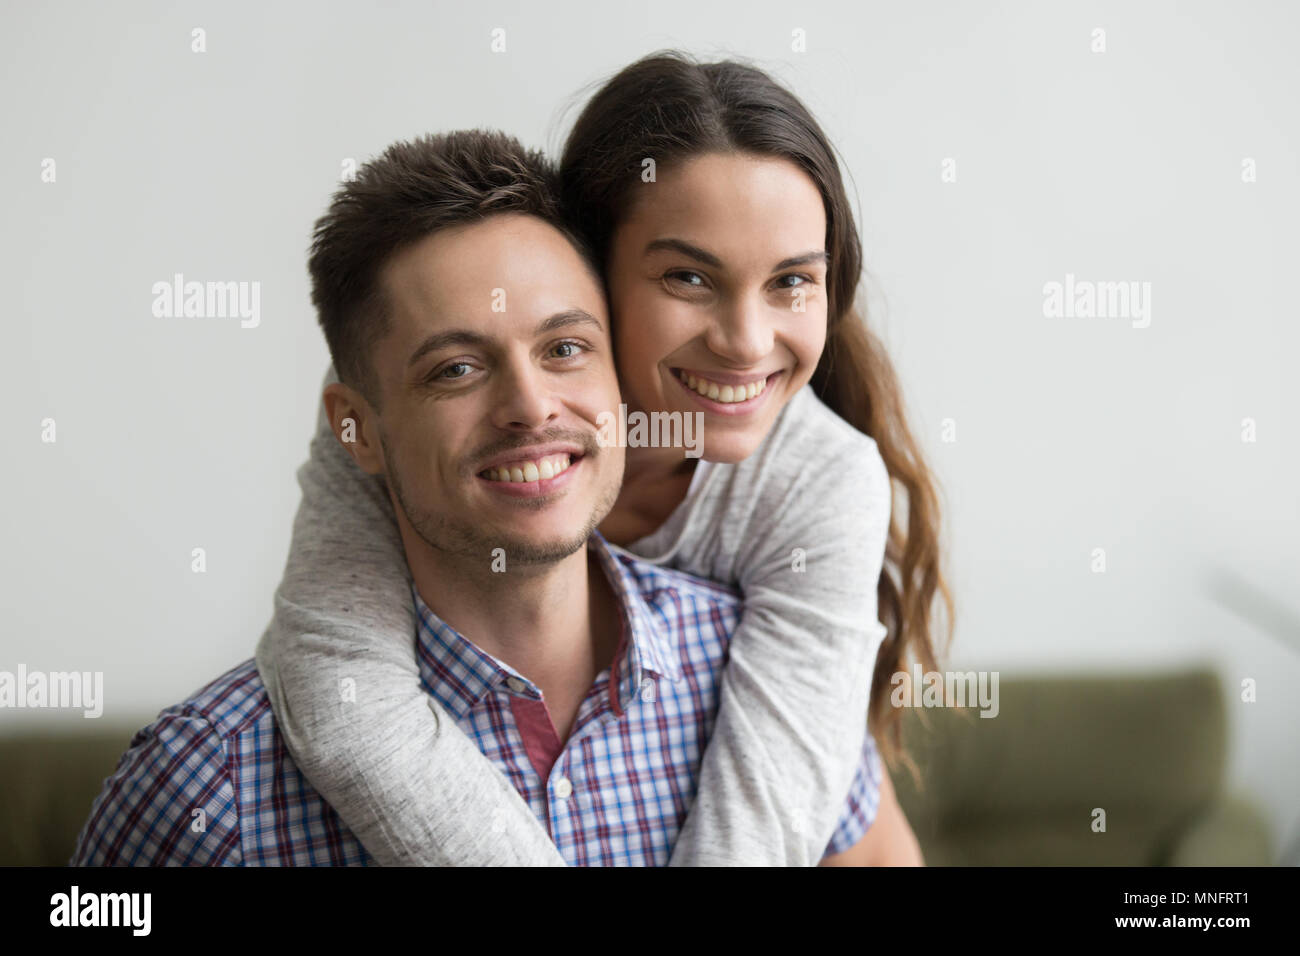 L'homme souriant femme gaie de ferroutage looking at camera Photo Stock